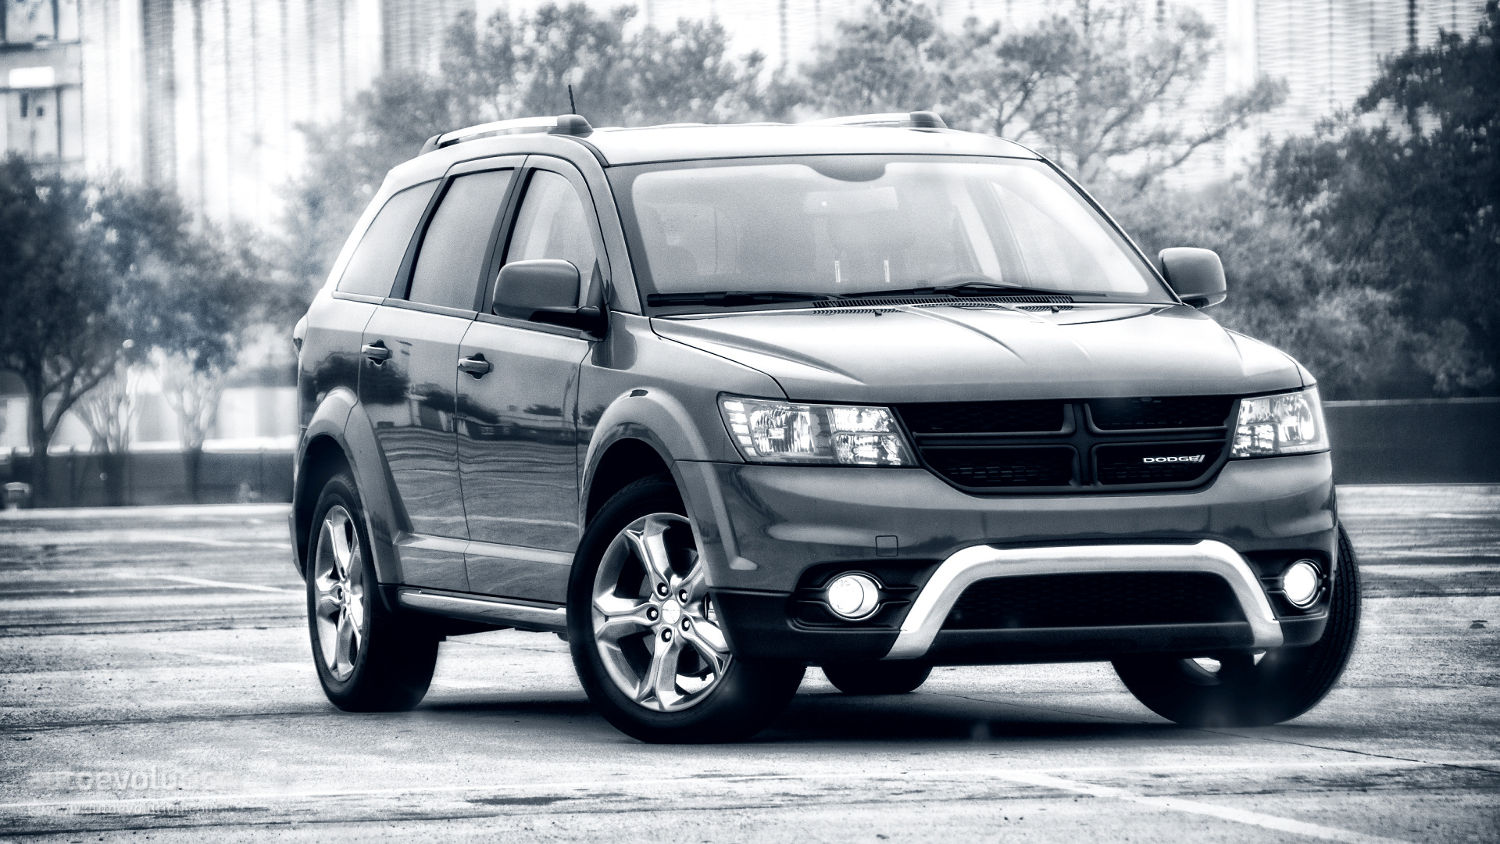 Comparison  Dodge Journey Crossroad SUV 2015  vs  Toyota